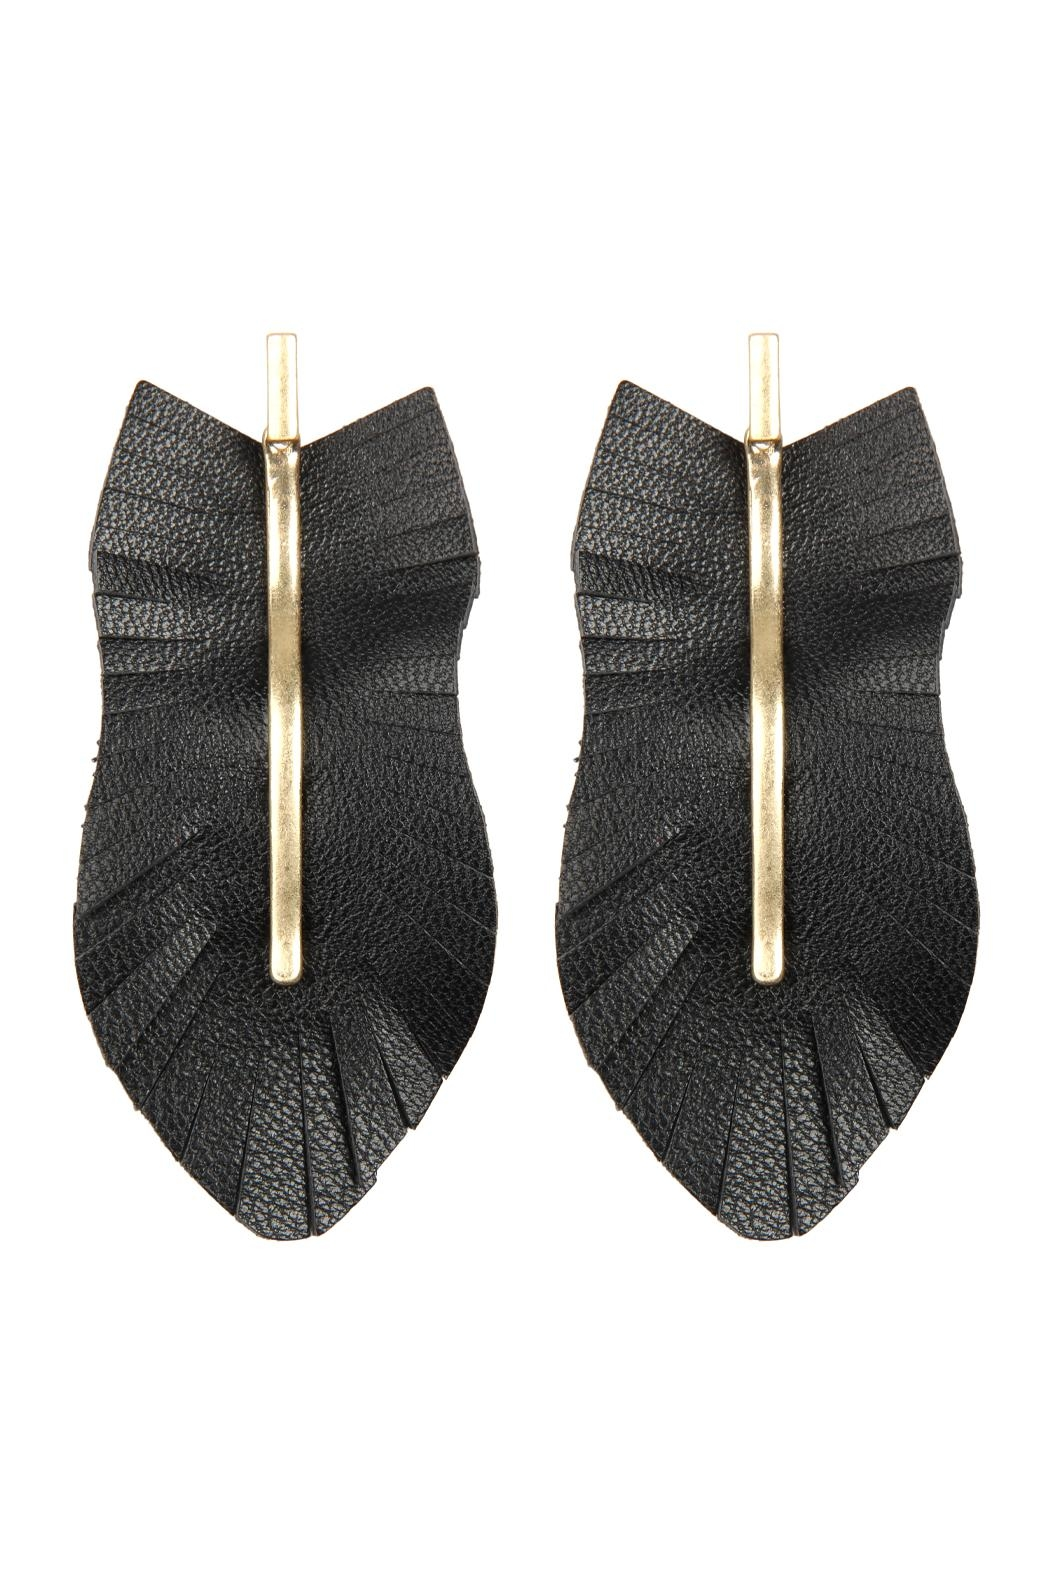 Riah Fashion Feather Shaped Fringe-Leather-Earrings - Main Image